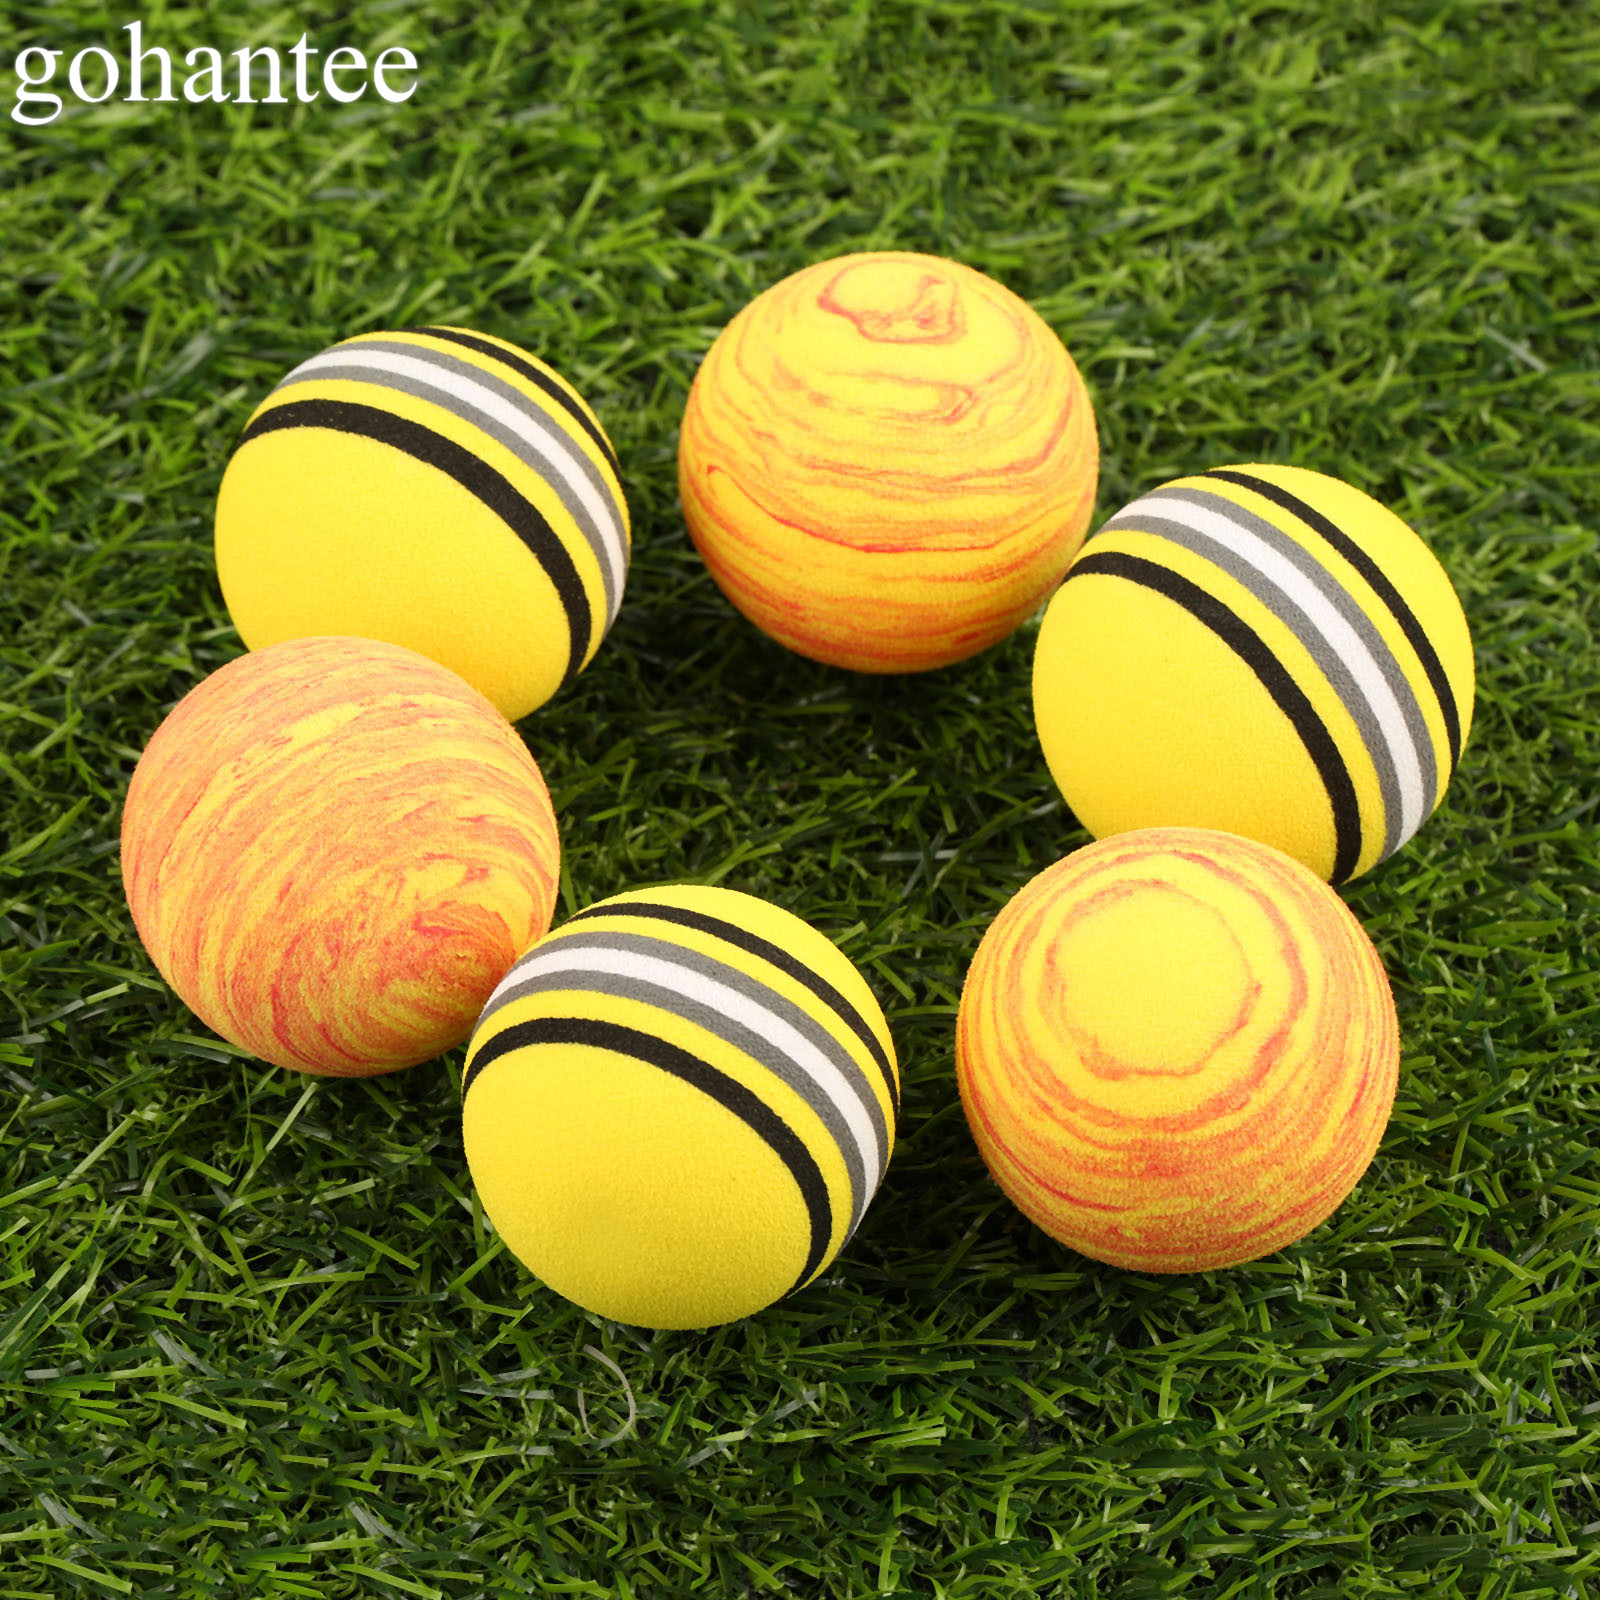 Gohantee 20 Pieces Rainbow Foam Golf Balls Indoor Golf Practice Balls Sponge Training Balls Golf Training Aids Diameter 41mm